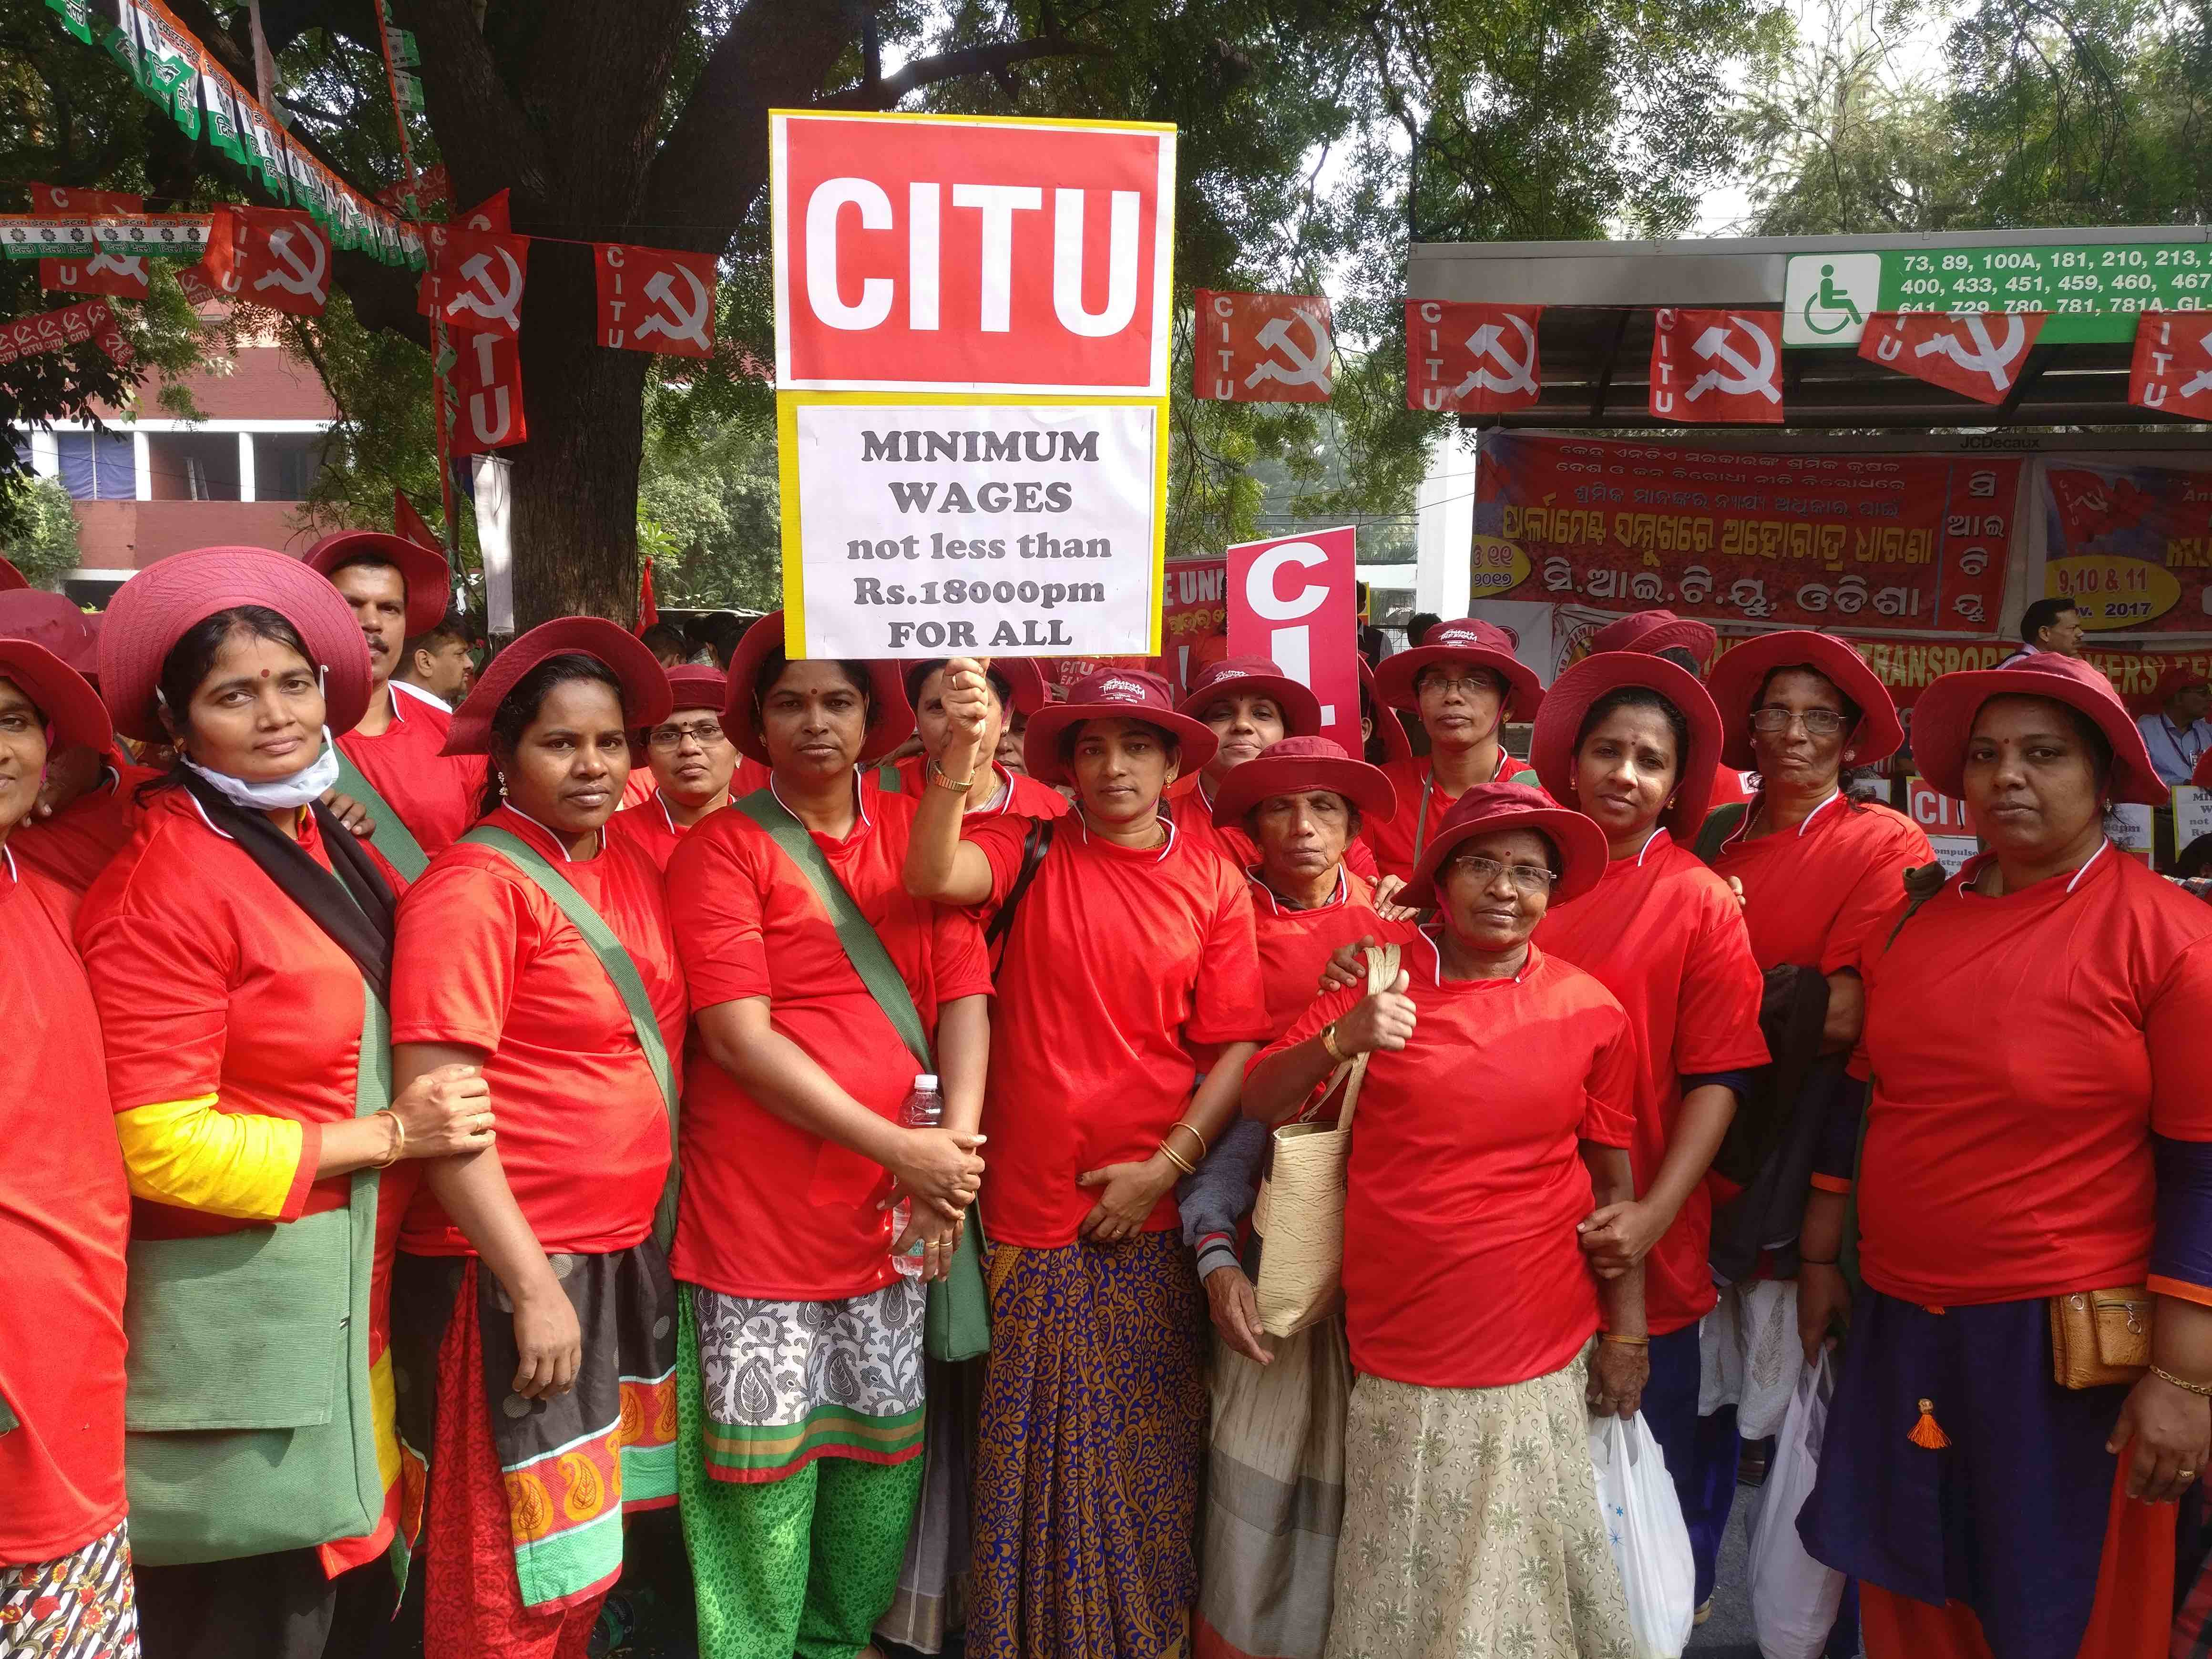 Centre of Indian Trade Unions (CITU) members at the protest. Credit: Ajoy Ashirwad Mahaprashasta/The Wire